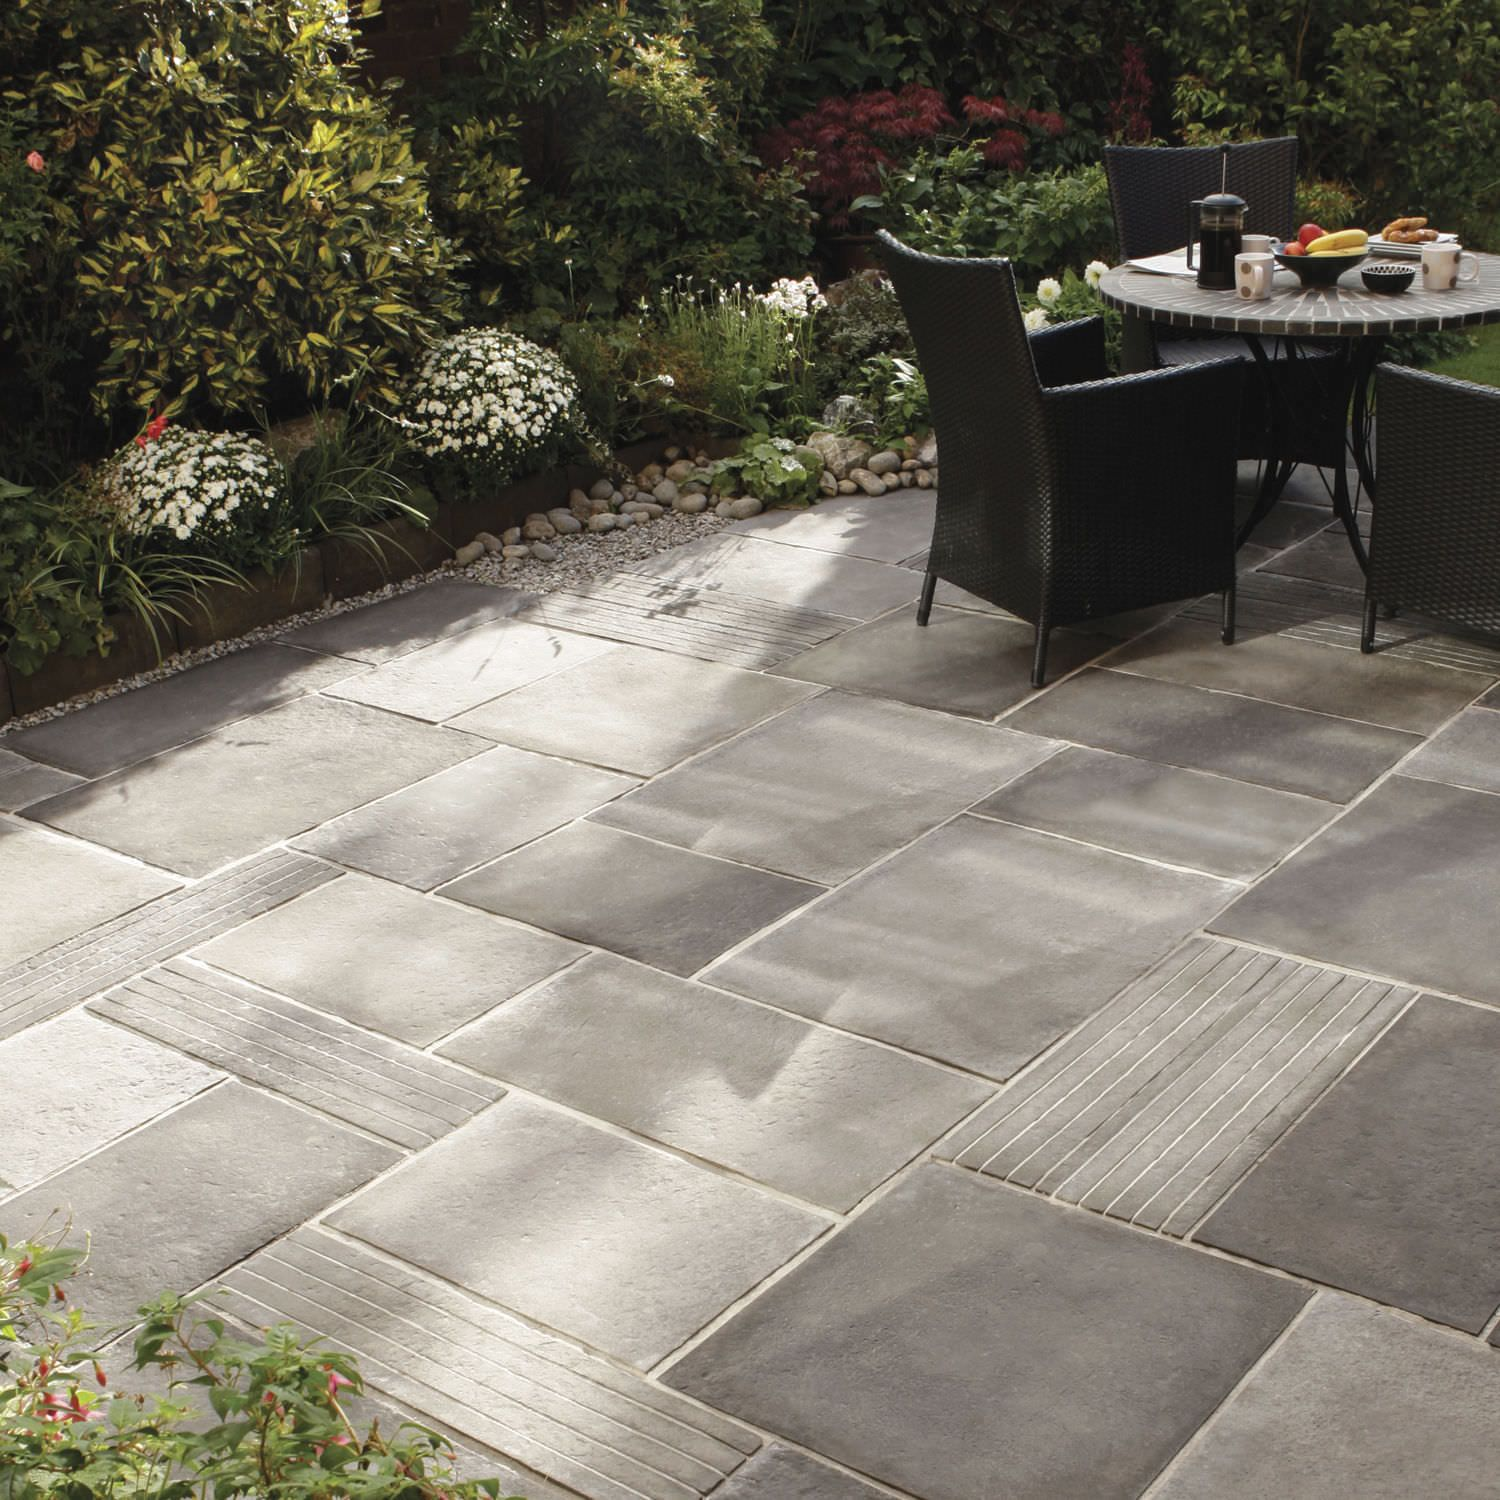 Engineered stone paving tile for outdoor floors  CLOISTERS  BRADSTONE  Videos  Decorating